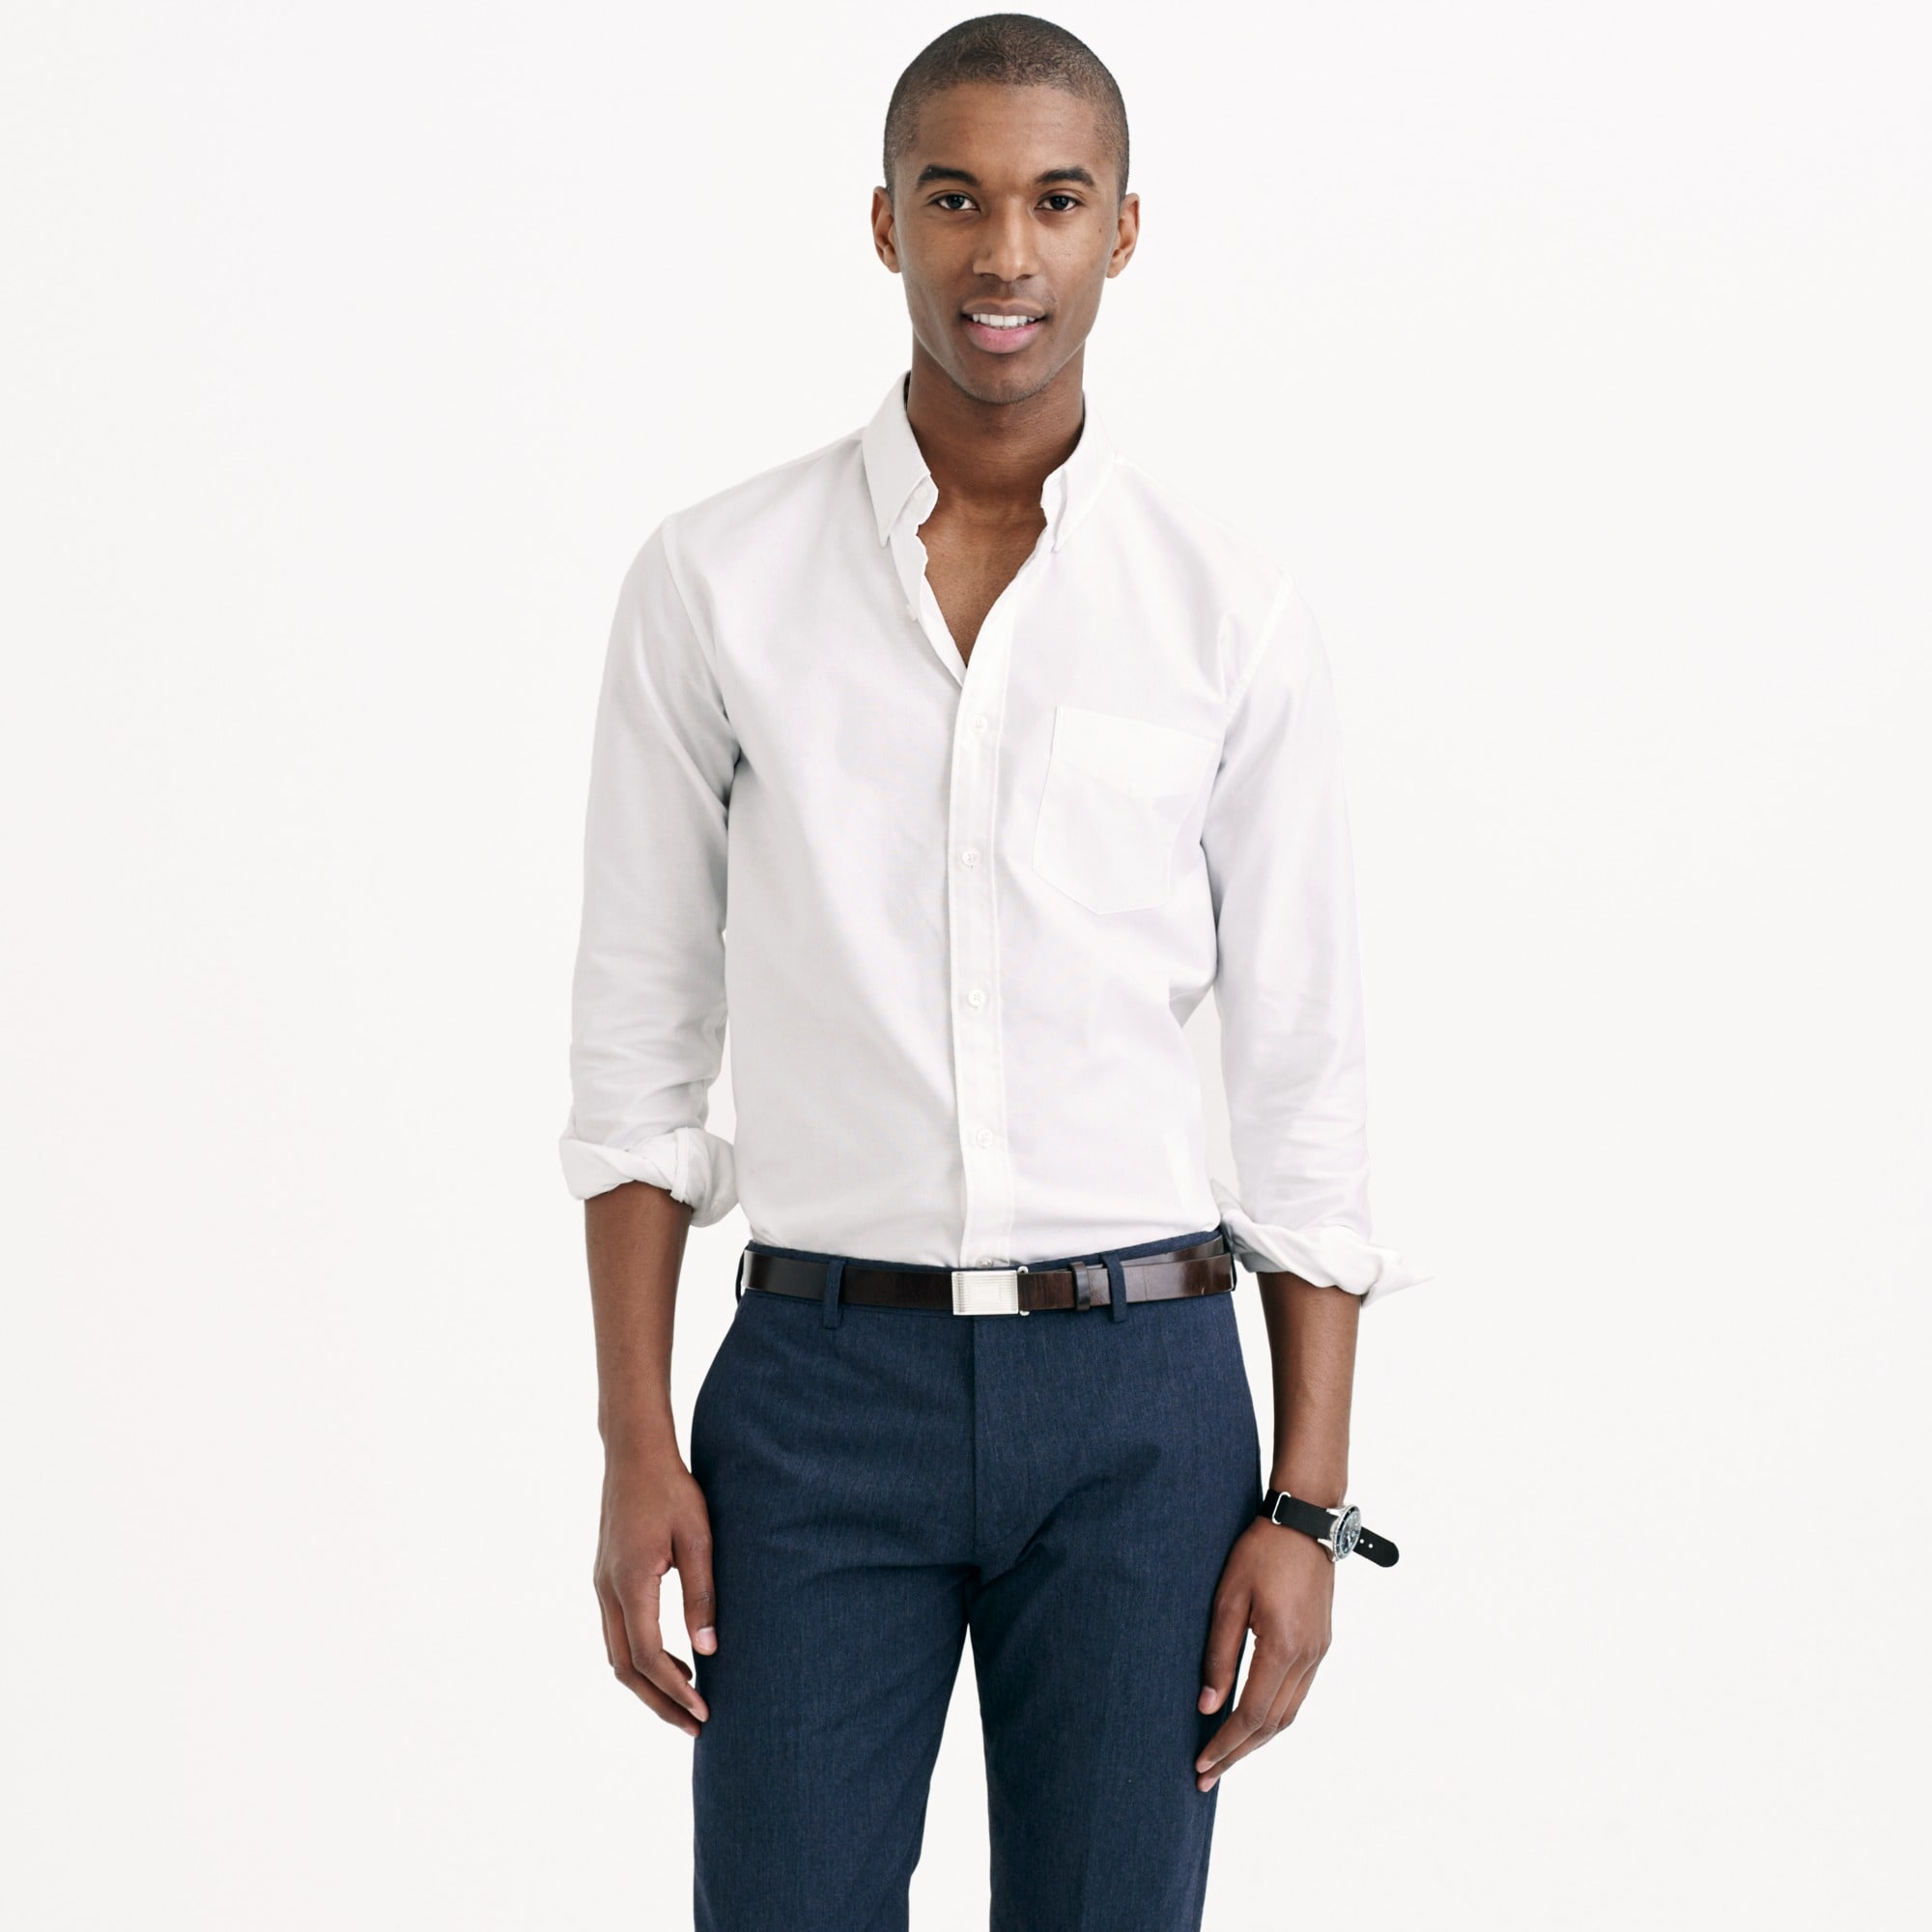 slim thomas mason for j.crew oxford cloth shirt : men's shirts